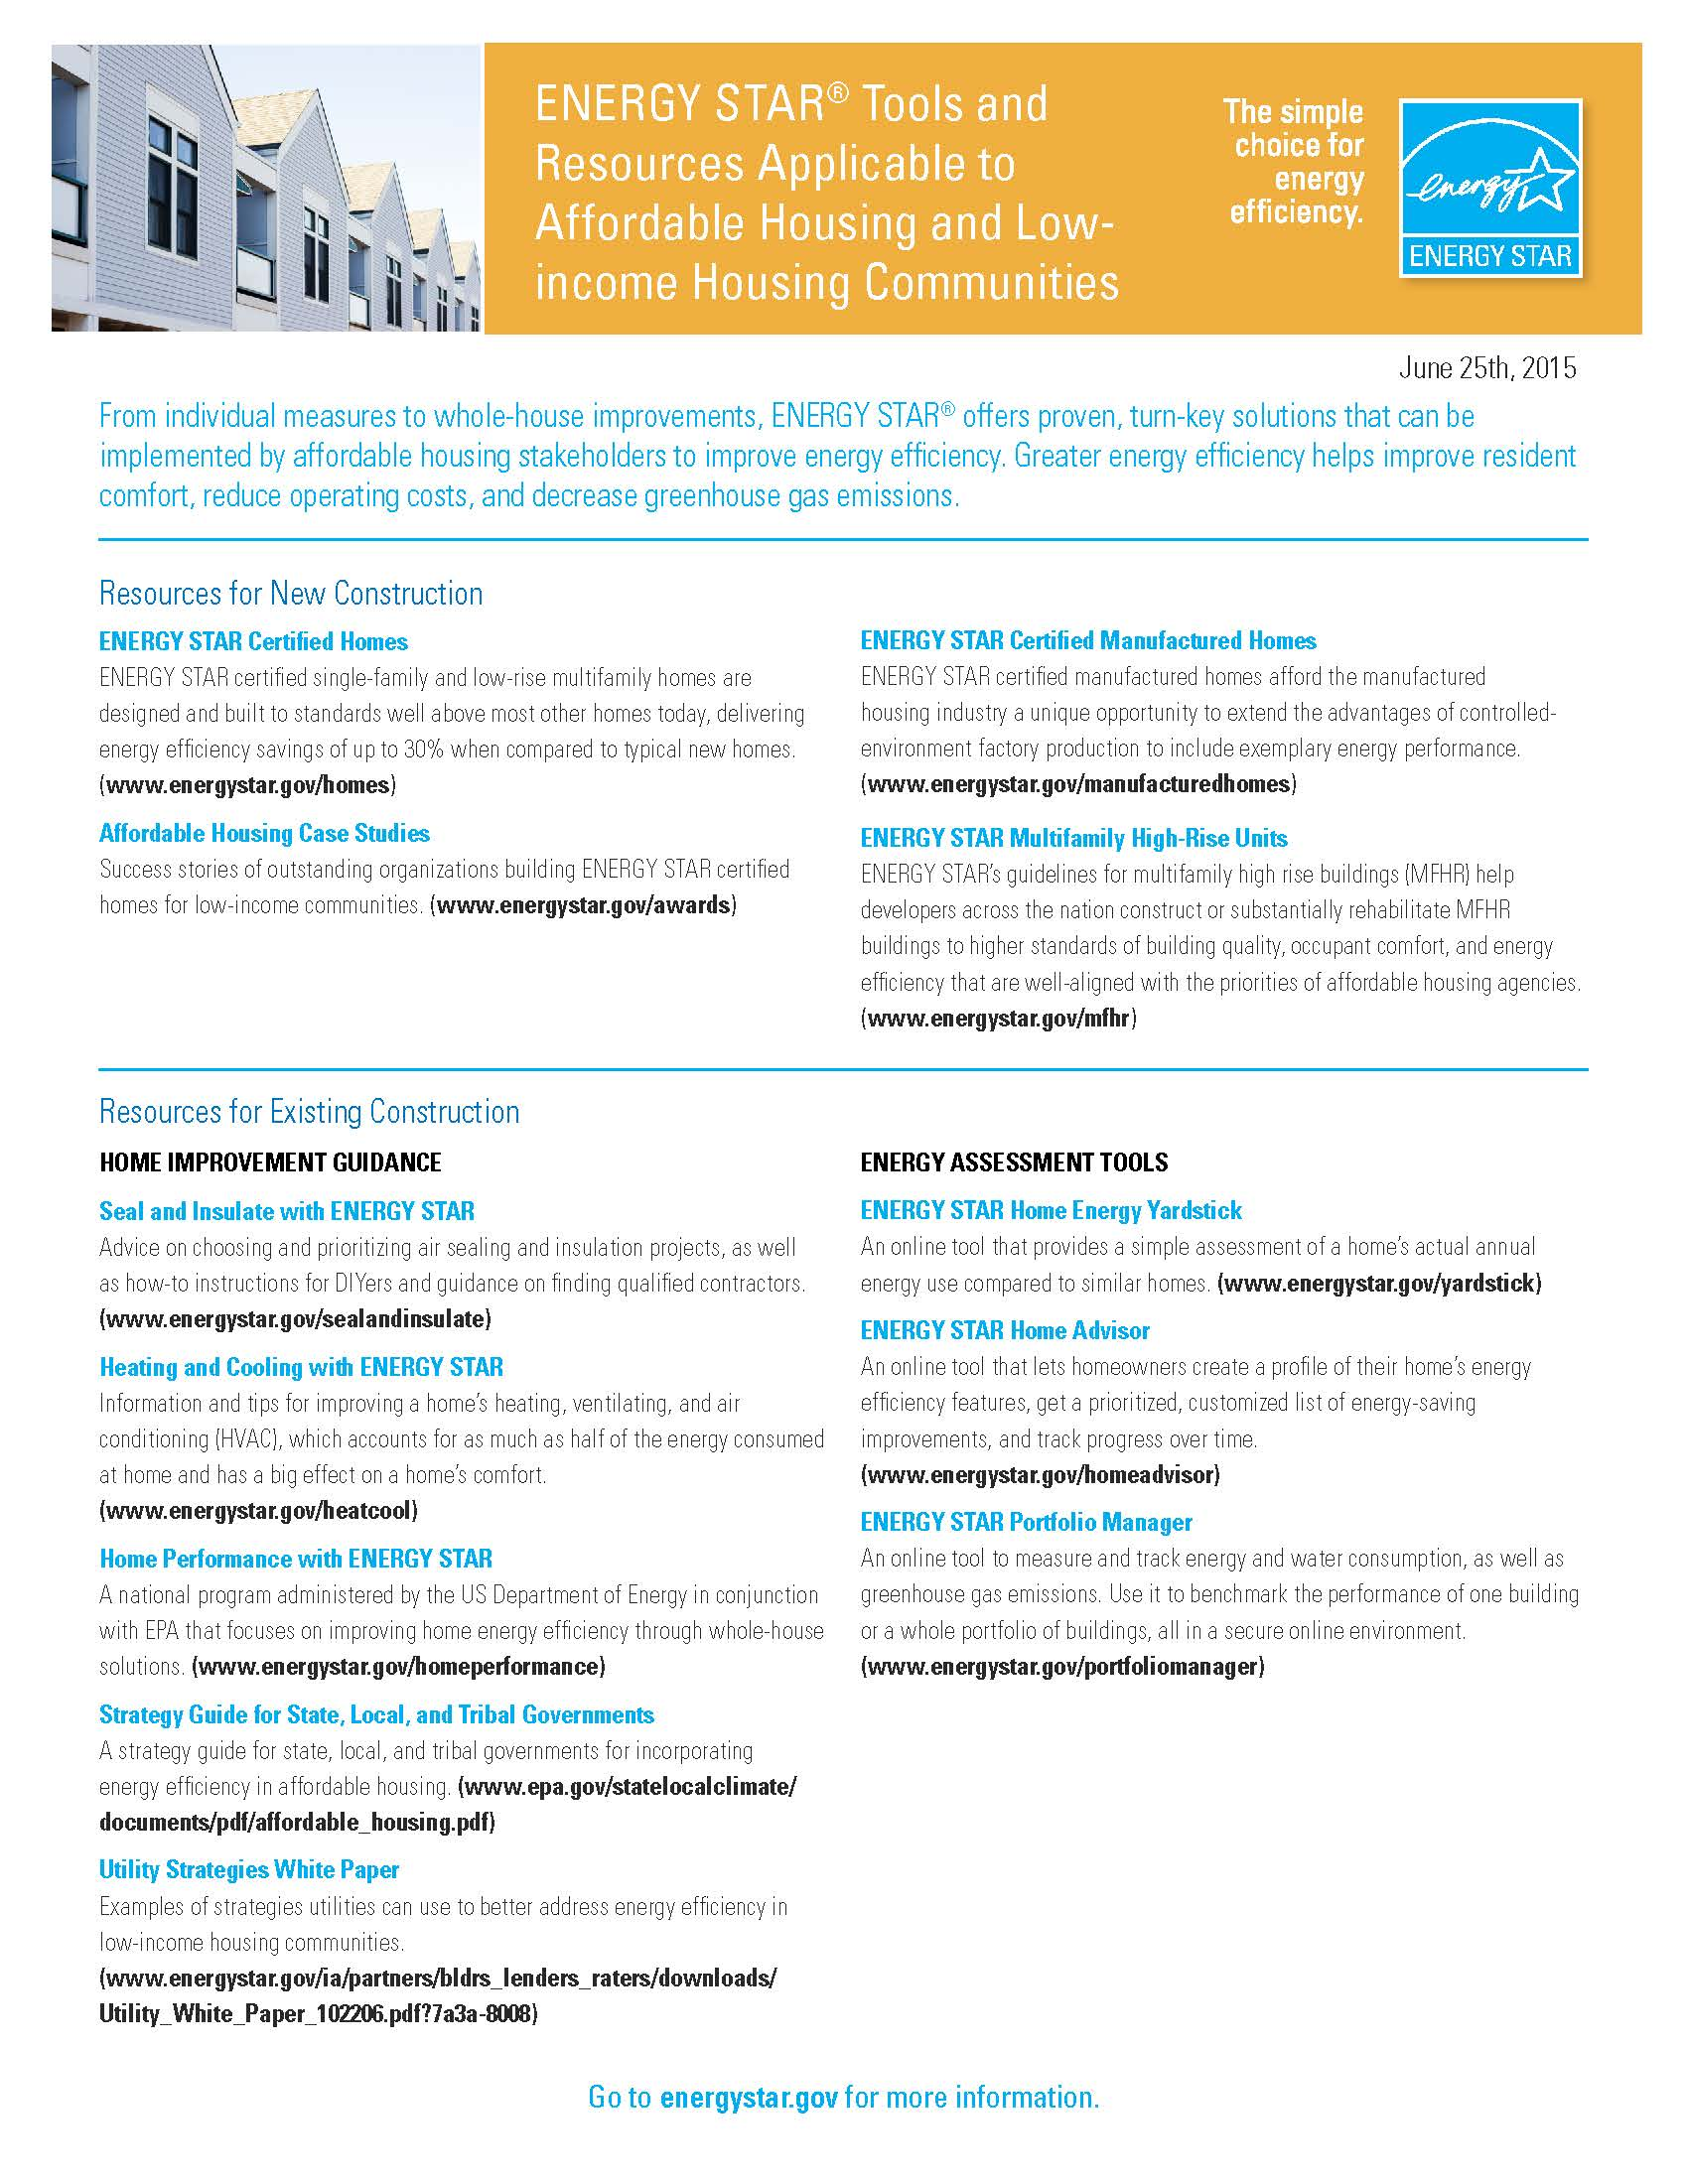 Fact Sheet - ENERGY STAR Resources for Affordable Housing